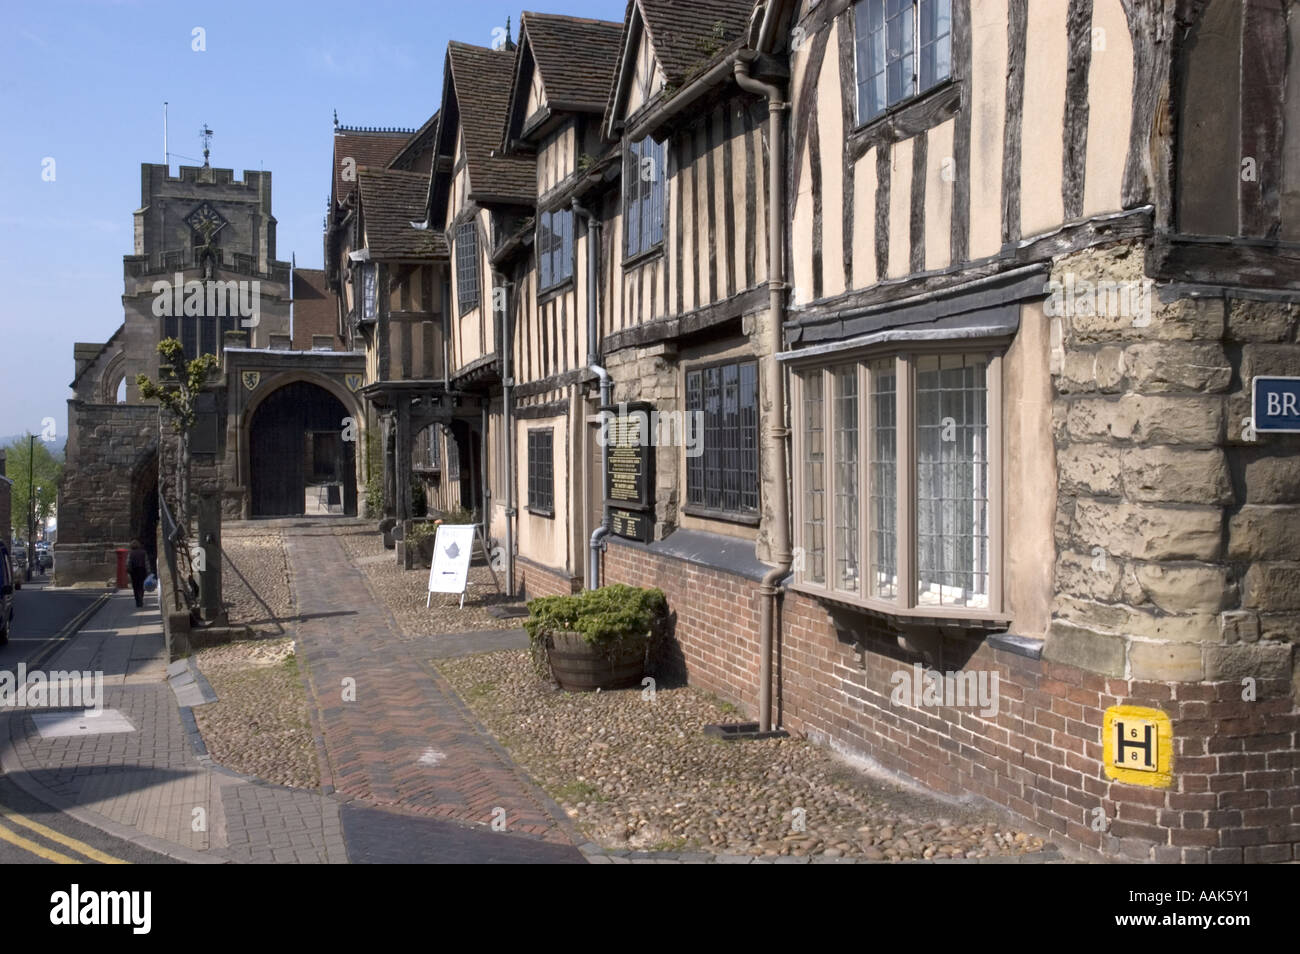 Picutre of the old Leycester hospital 14th 15th century buildings in Warwick England - Stock Image